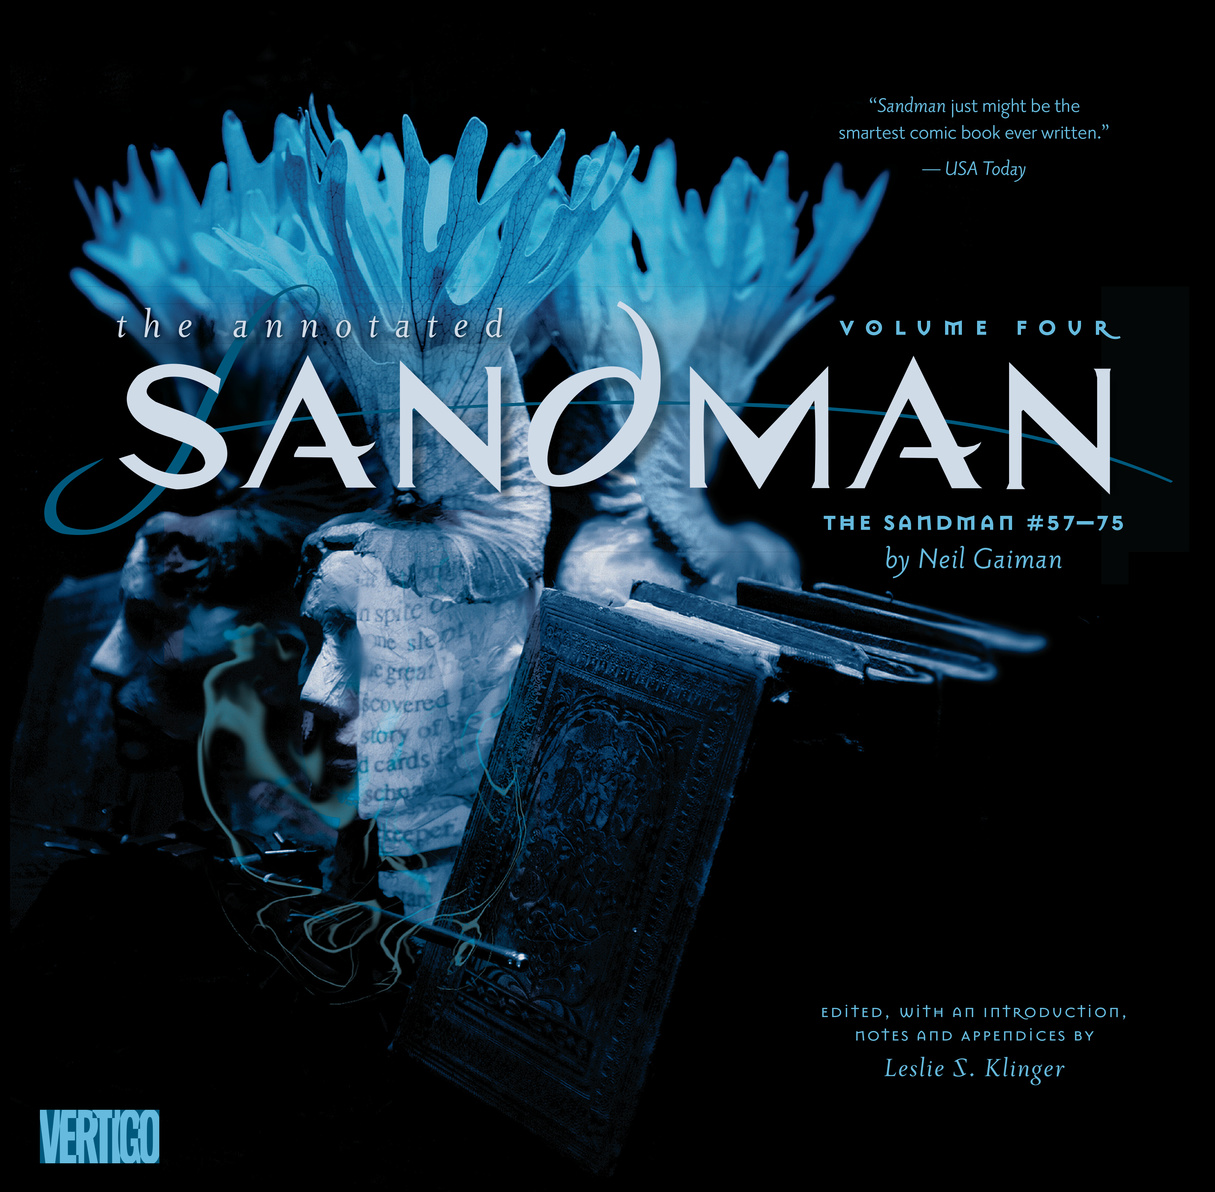 Annotated Sandman Vol. 4 kenya vol 4